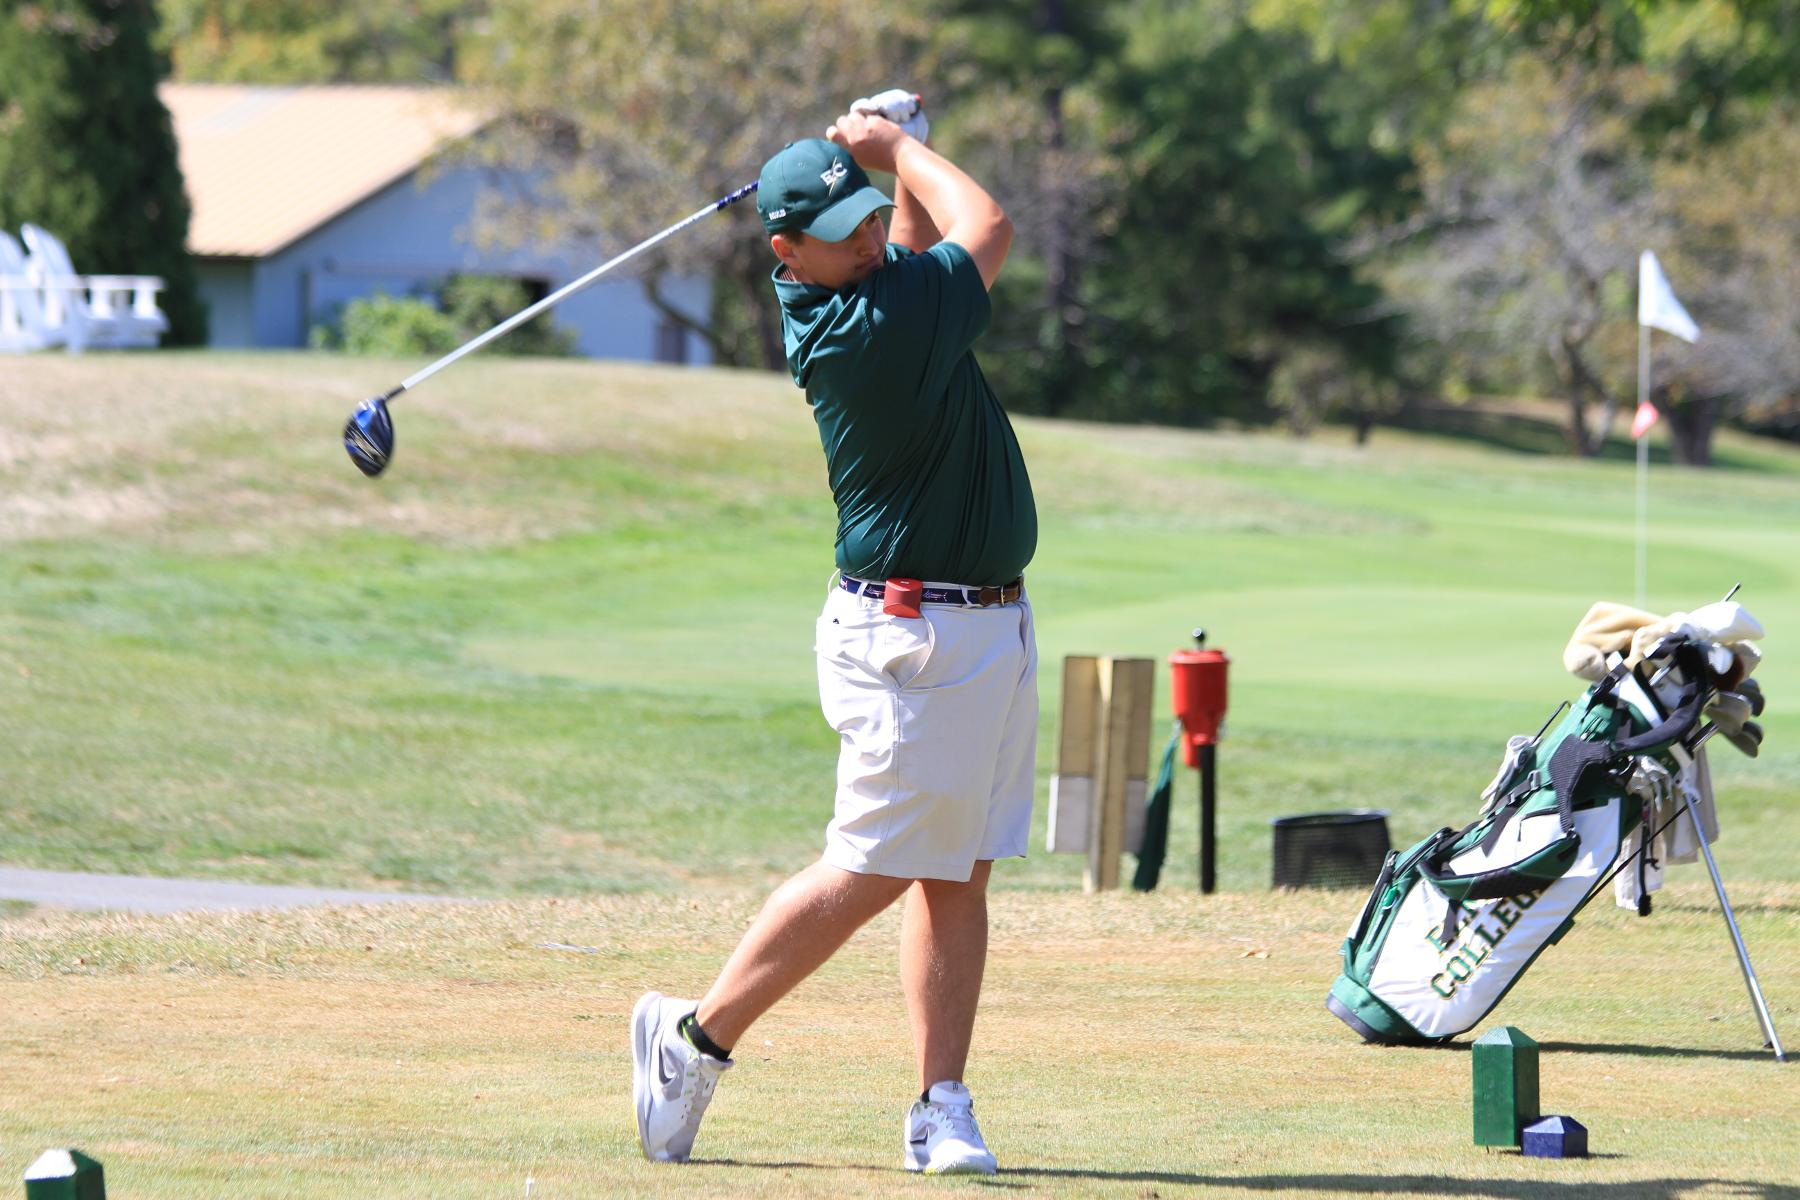 Men's Golf 17th After 18 Holes At NEIGA Championship